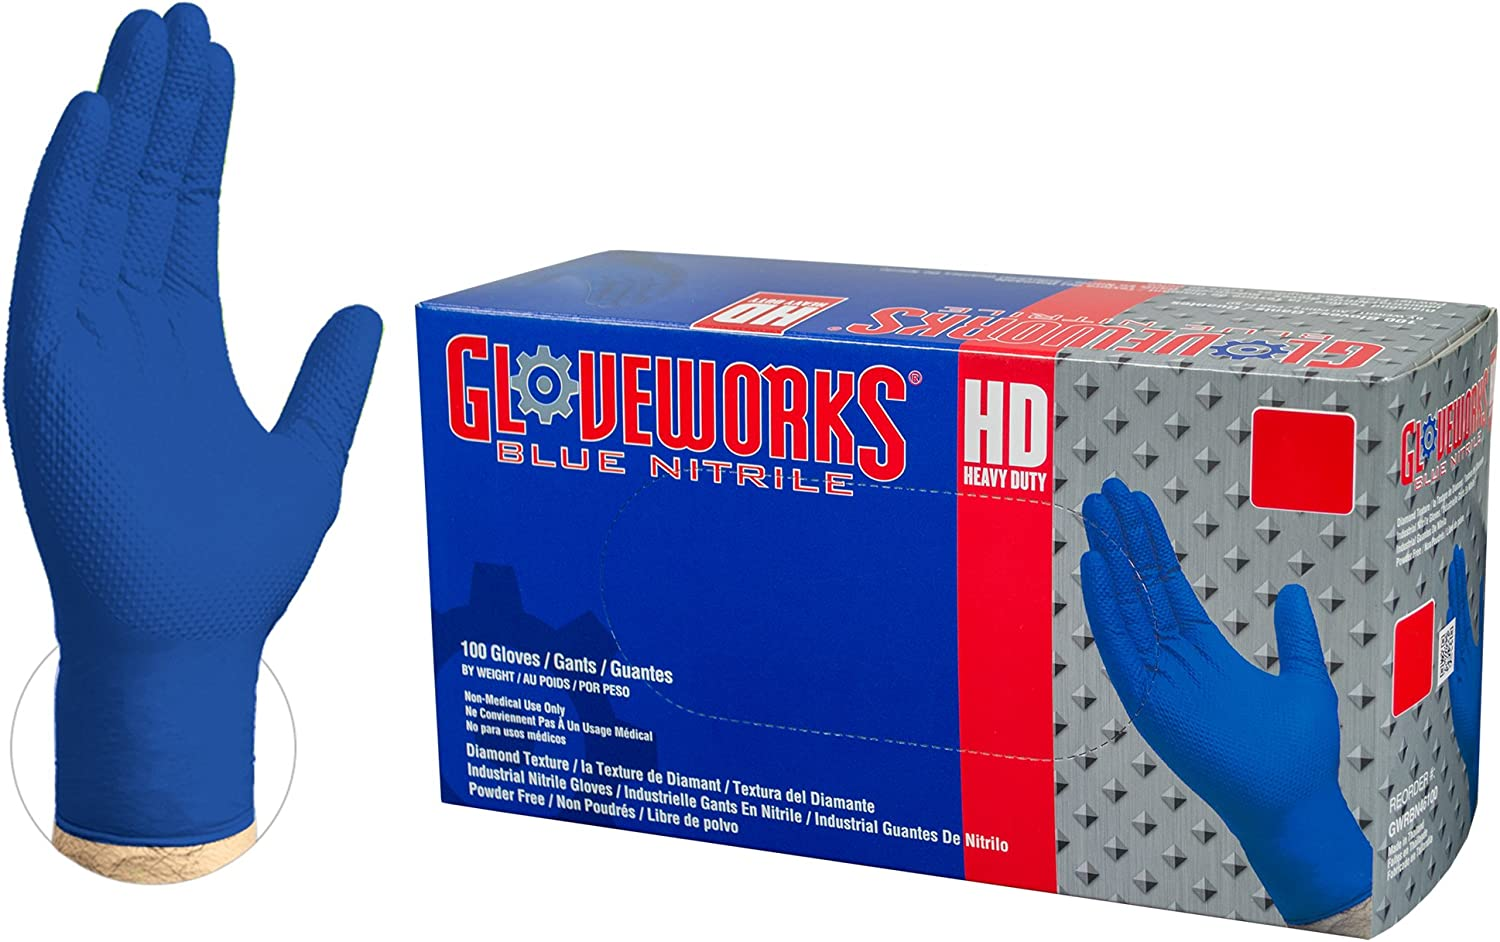 GLOVEWORKS HD Industrial Blue Nitrile Gloves - 6 mil, Latex Free, Powder Free, Diamond Texture, Disposable, XLarge, GWRBN48100-BX, Case of 1000